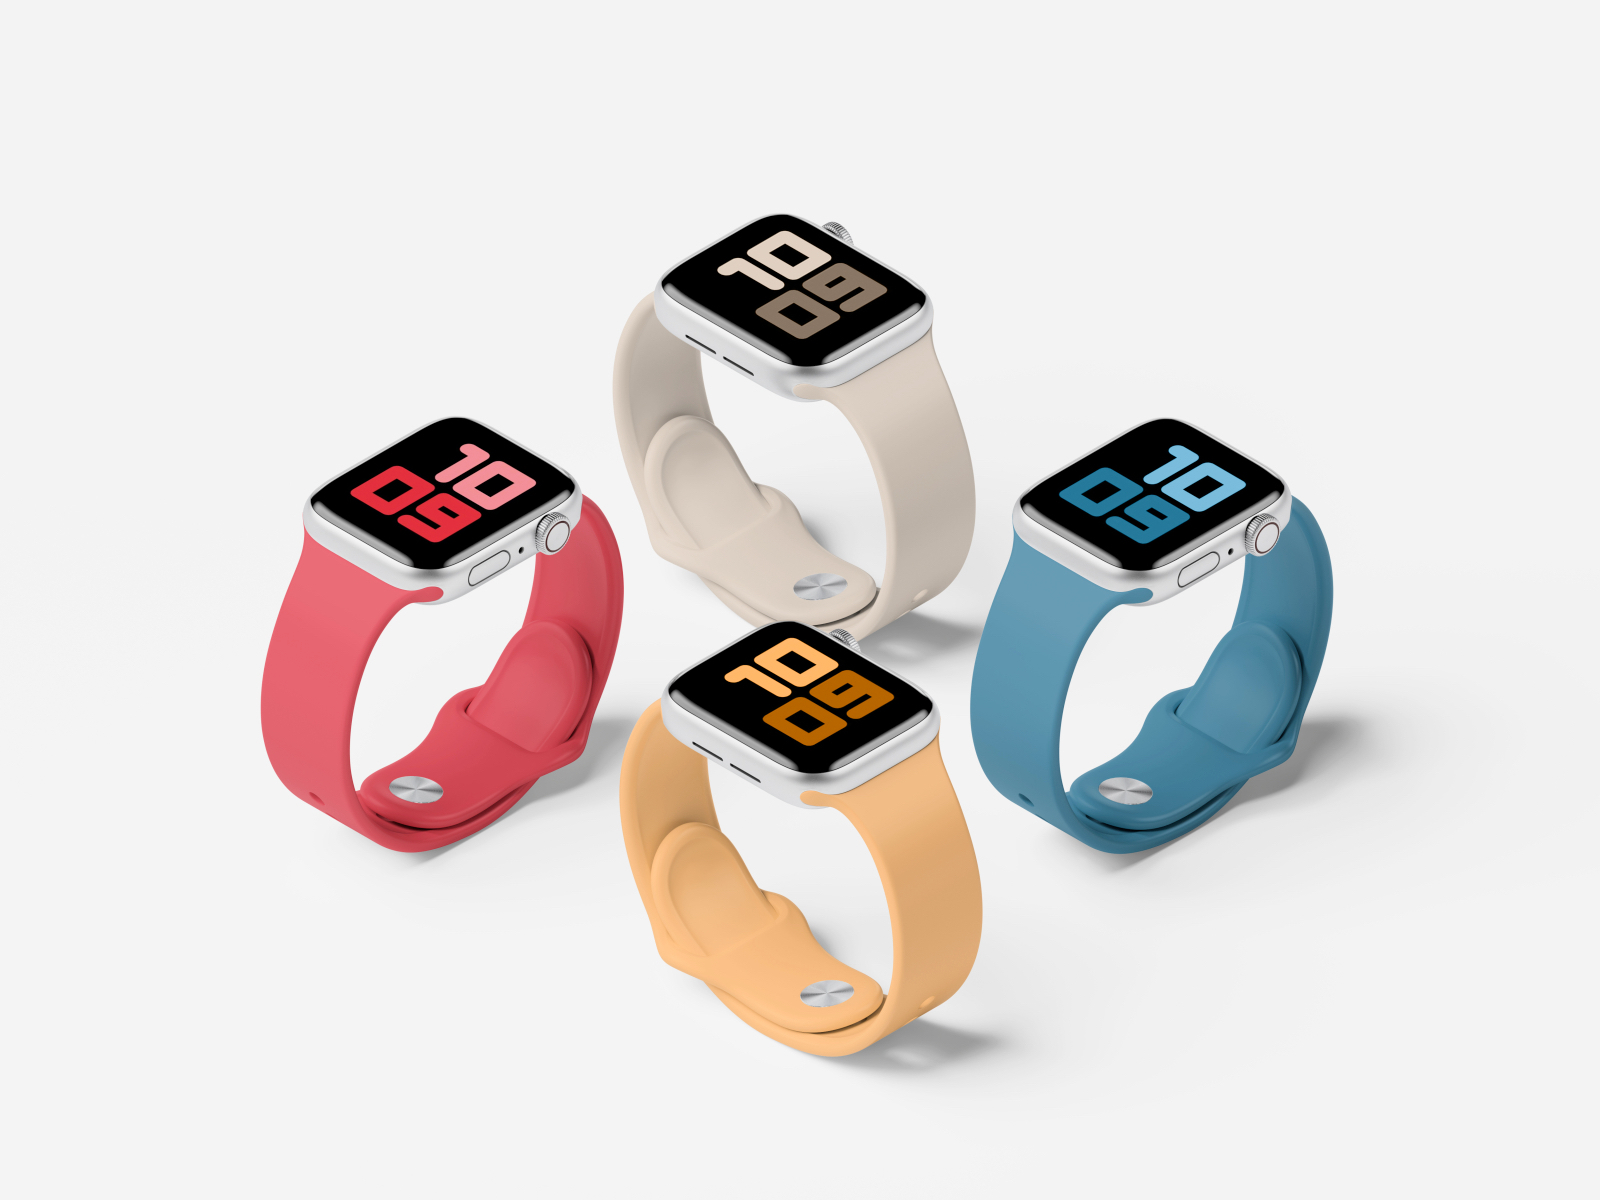 Apple Watch Series 5 Set Mockup - Use this Apple Watch Series 5 to showcase your app designs.